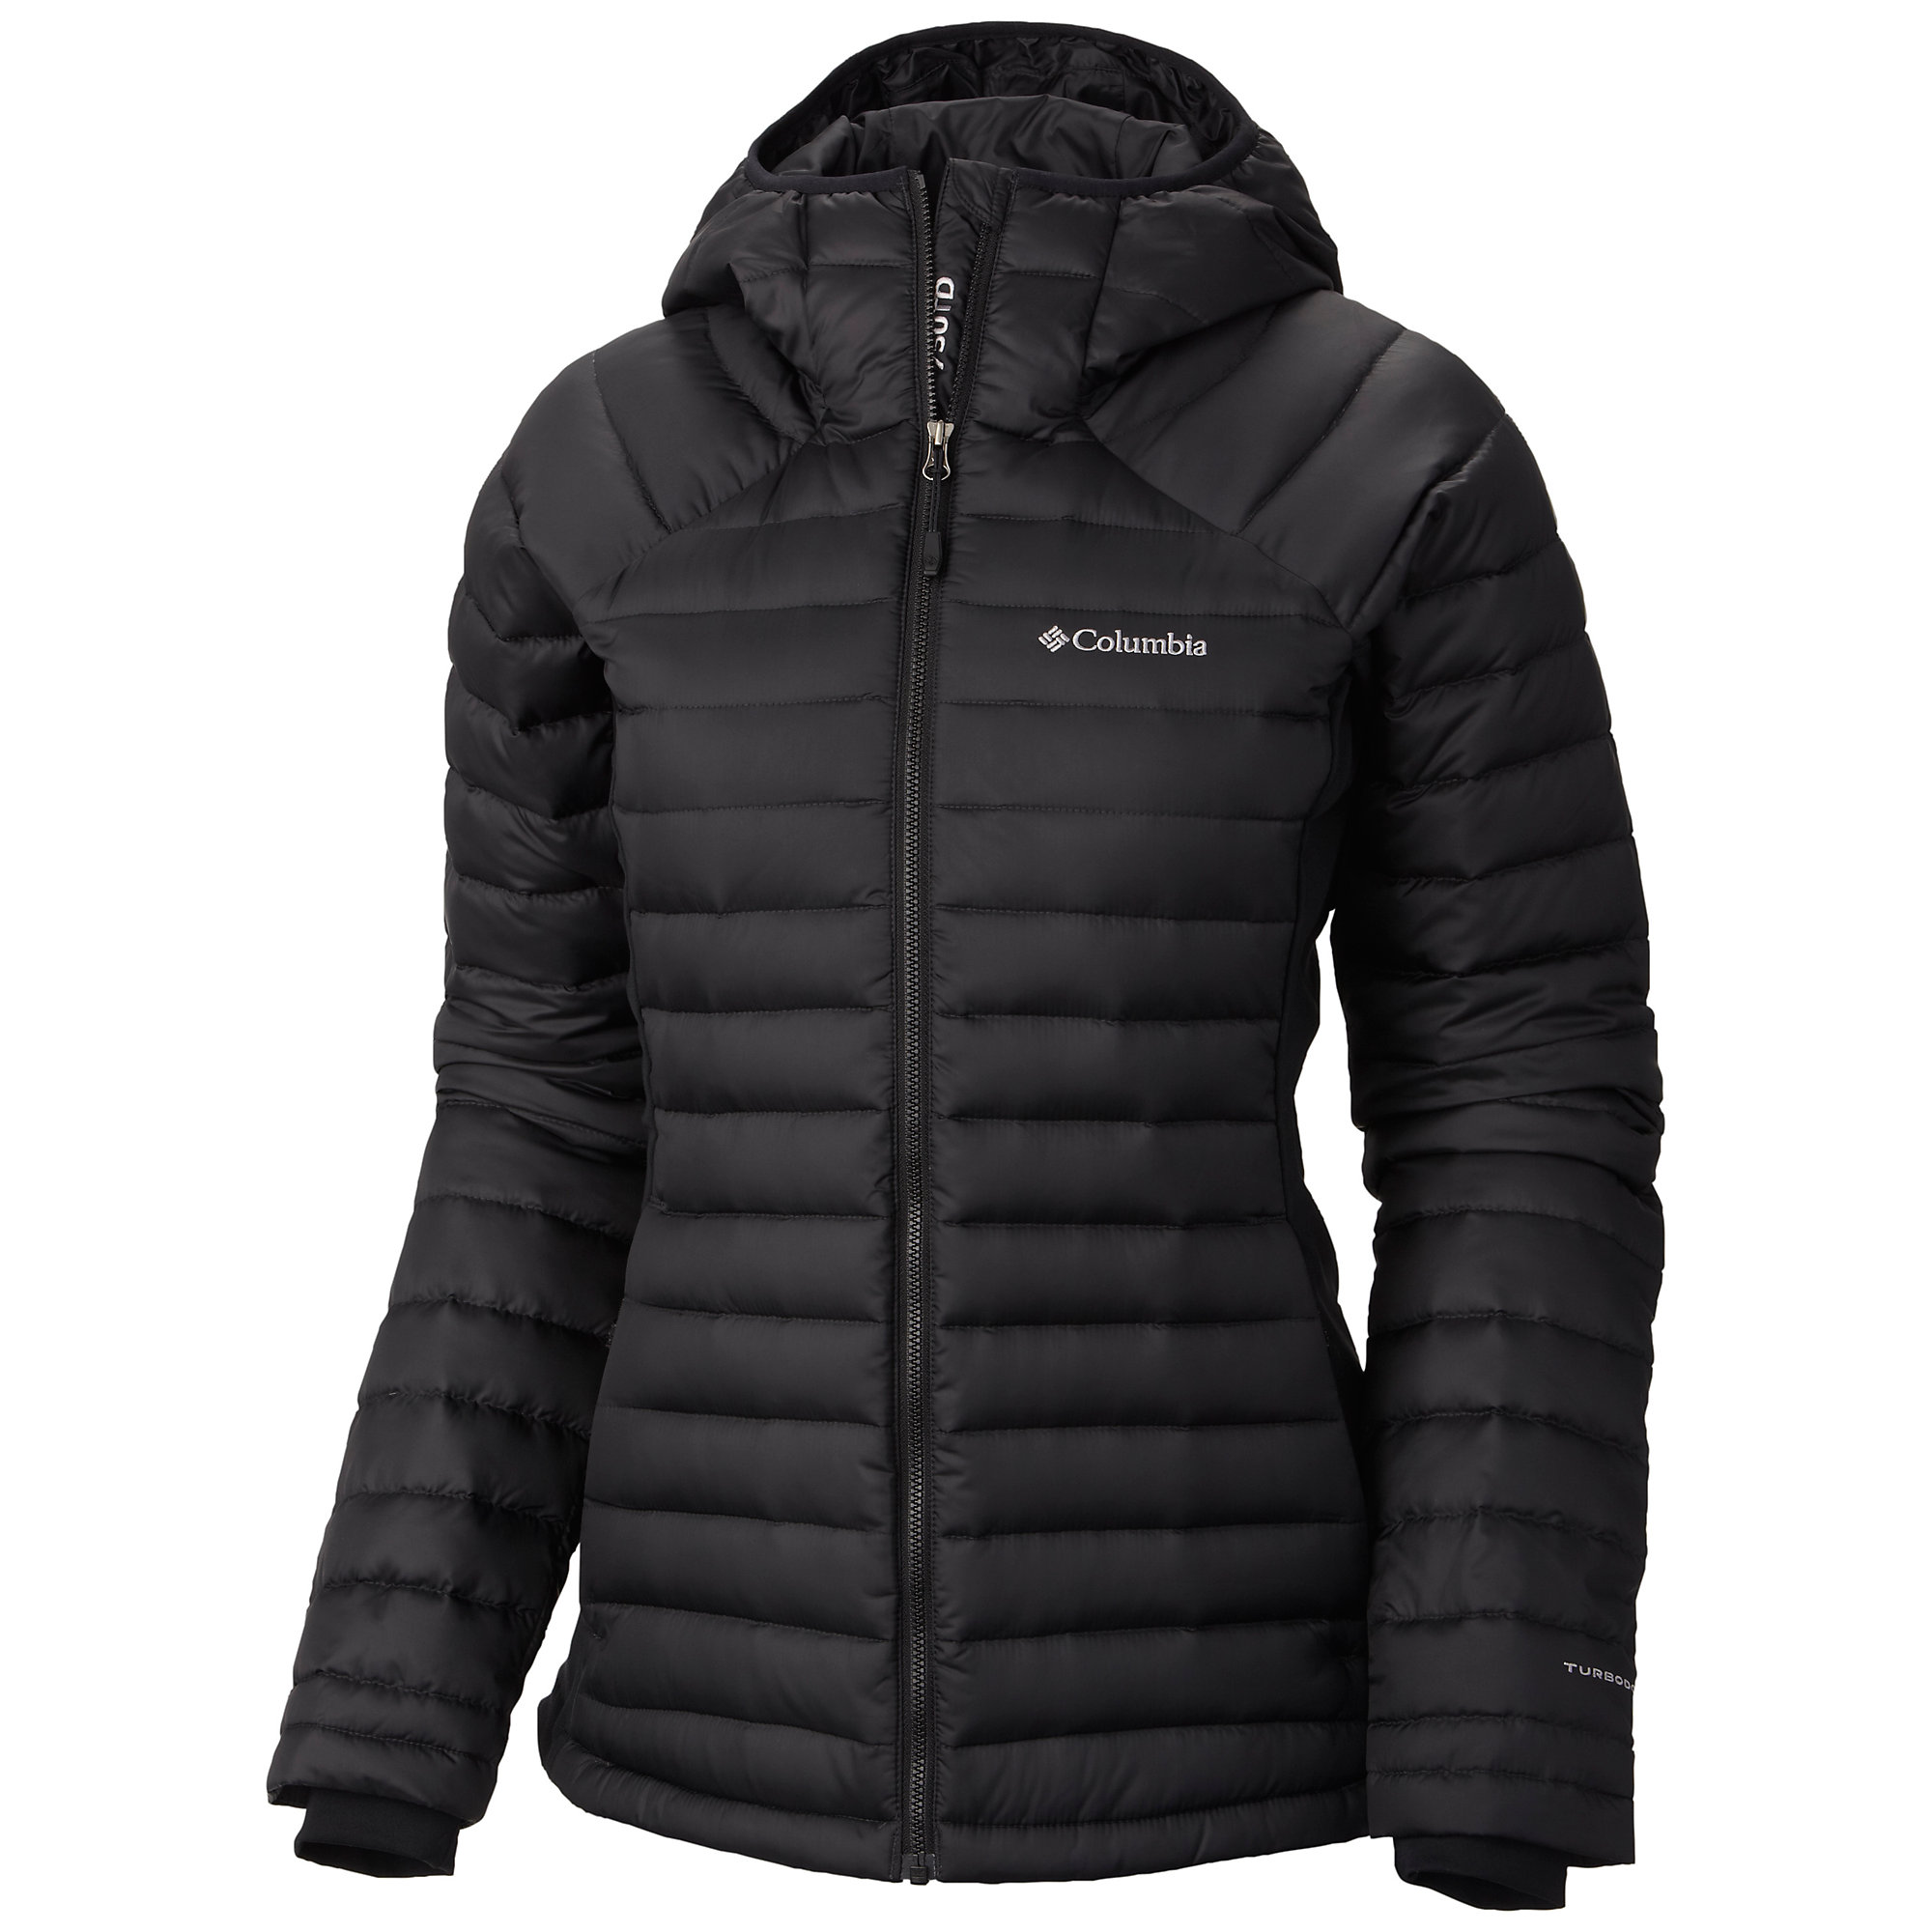 Columbia Gold 750 TurboDown Hybrid Hooded